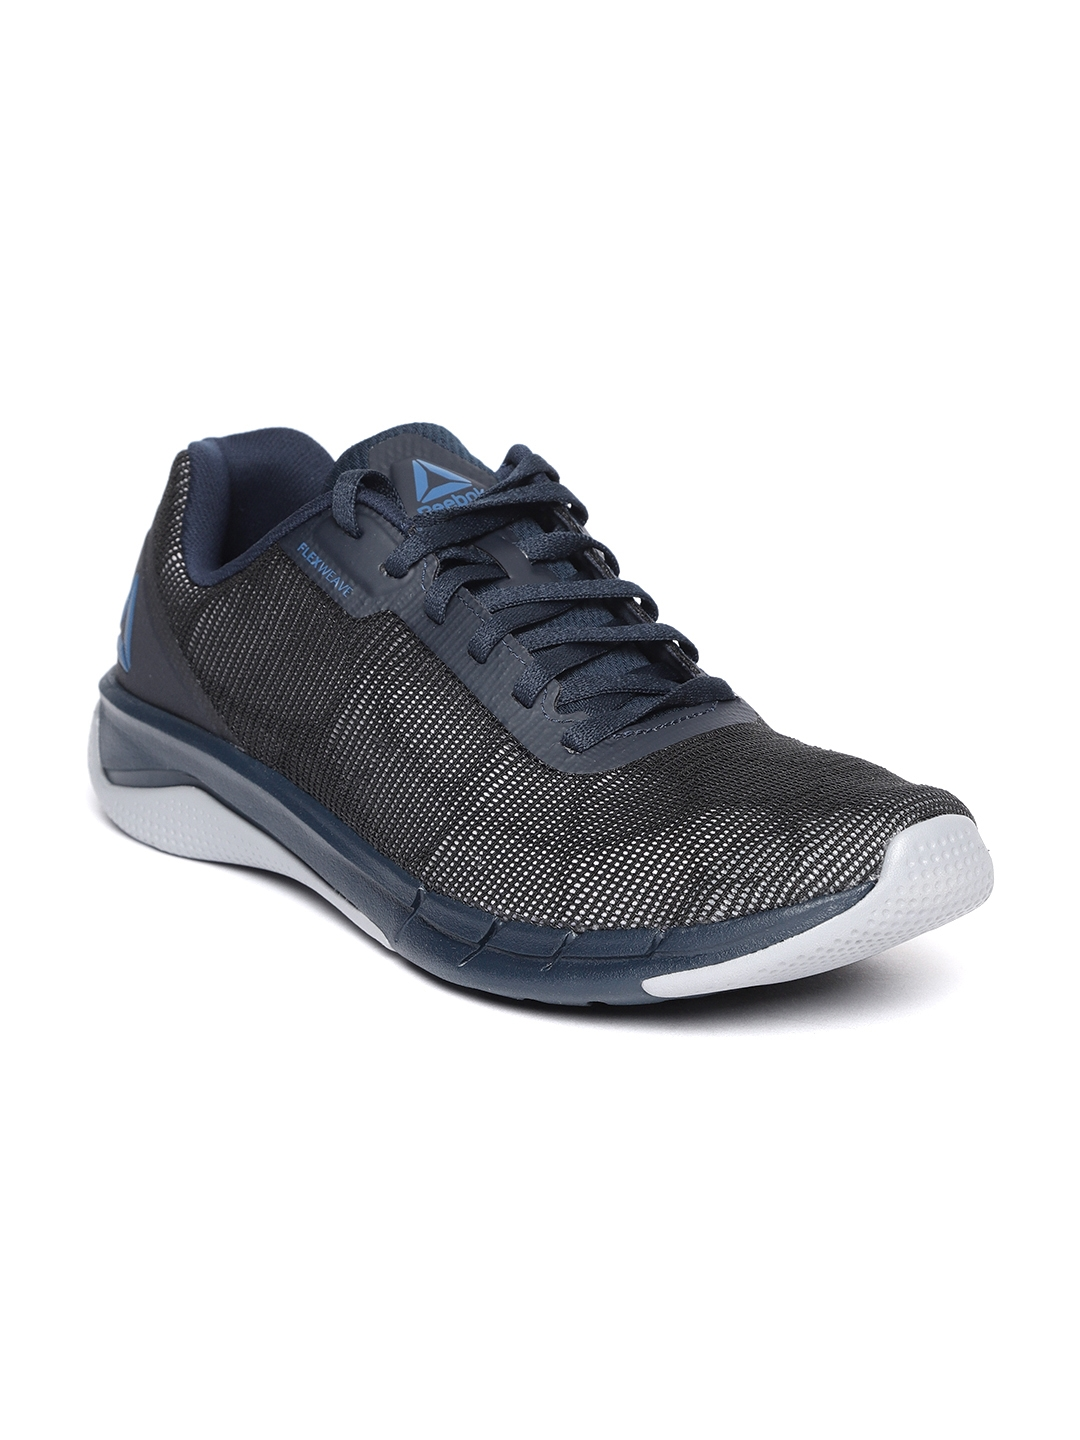 a7ae14f6e059dc Buy Reebok Men Black   Navy Blue Fast Flexweave Running Shoes ...